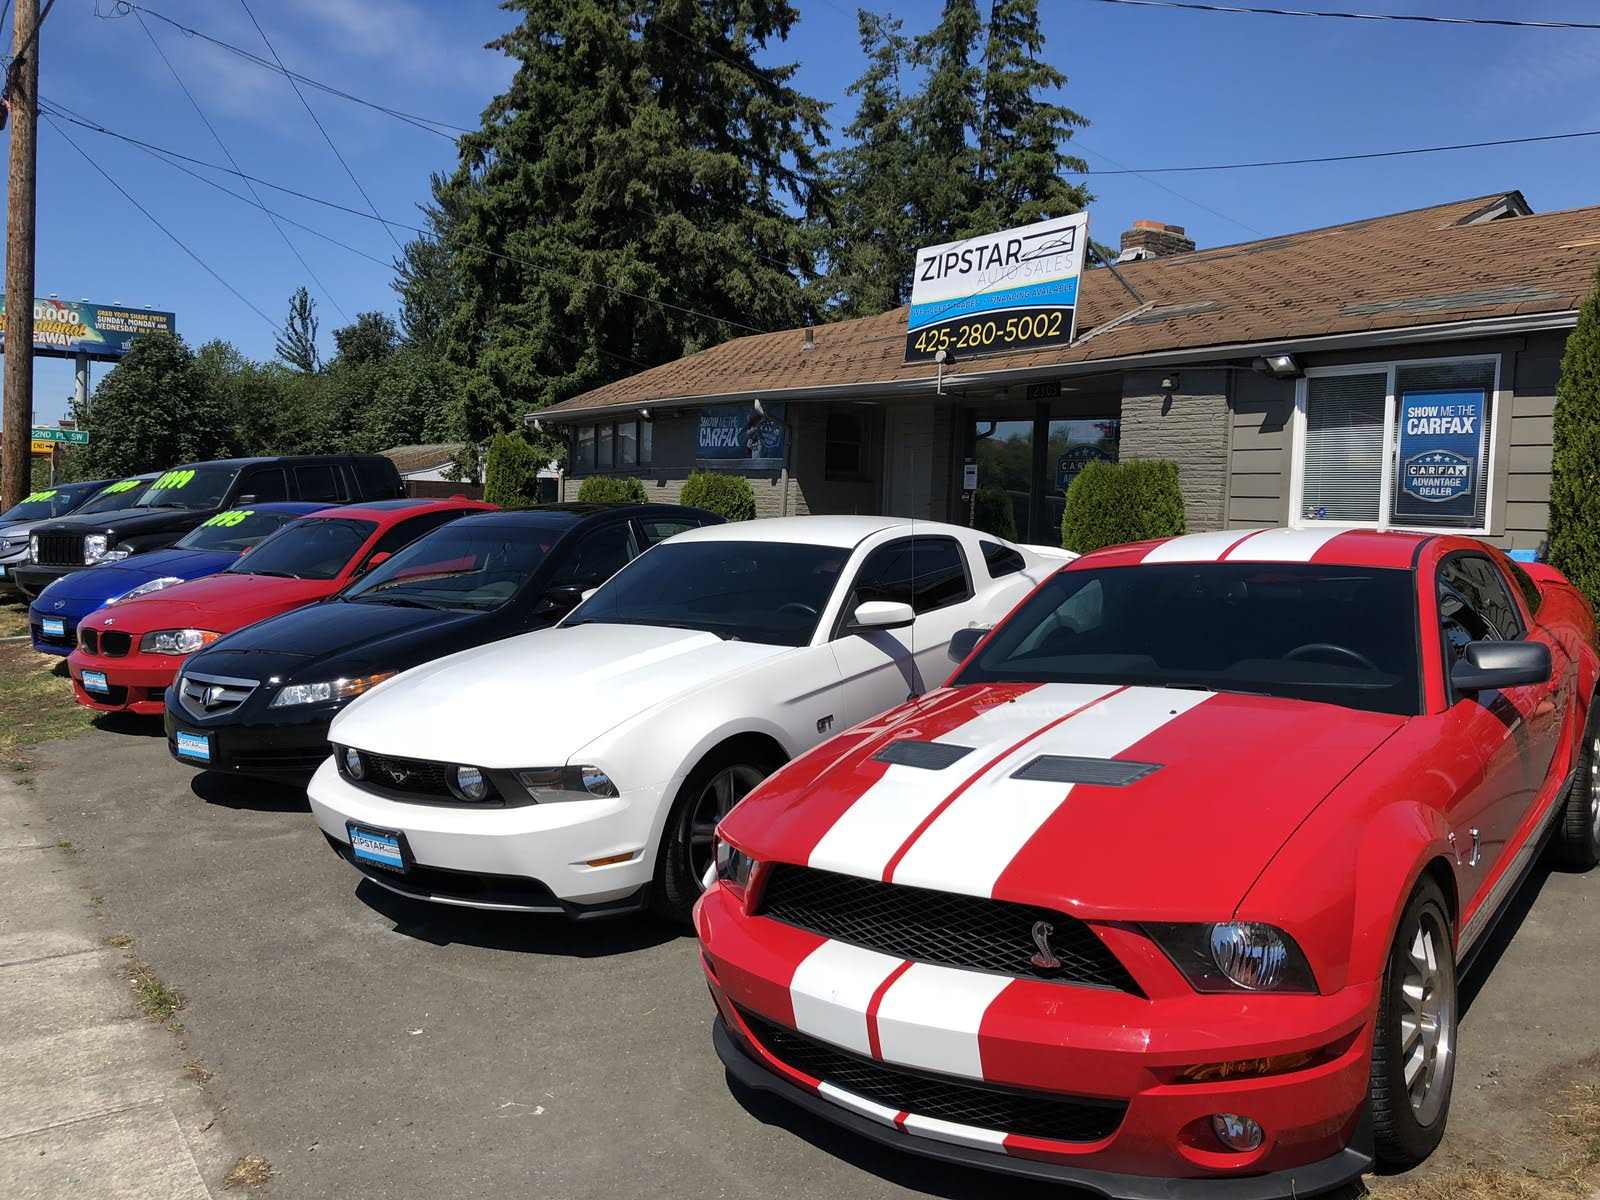 Carfax Auto Sales Fresh Zipstar Auto Sales Lynnwood Wa Read Consumer Reviews Browse